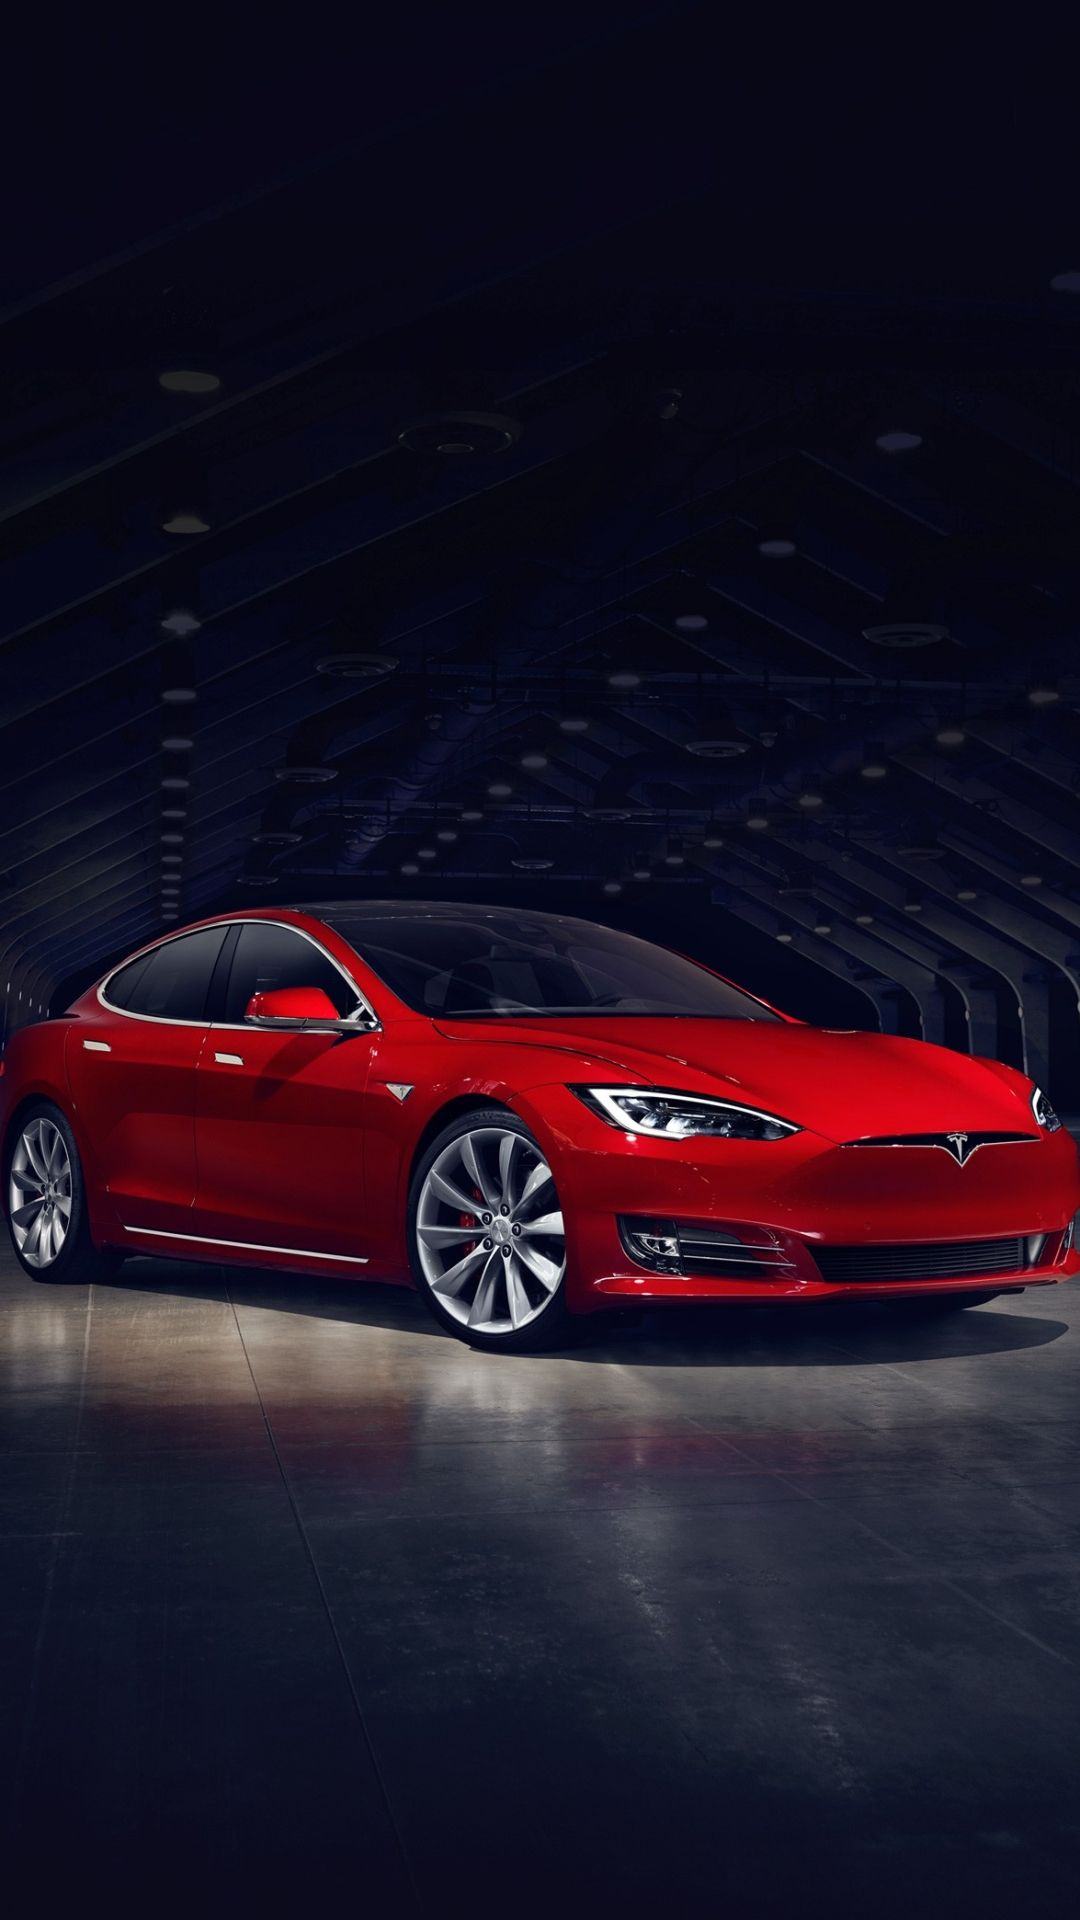 2016 Red Tesla Model S No Grill iPhone 6 wallpaper